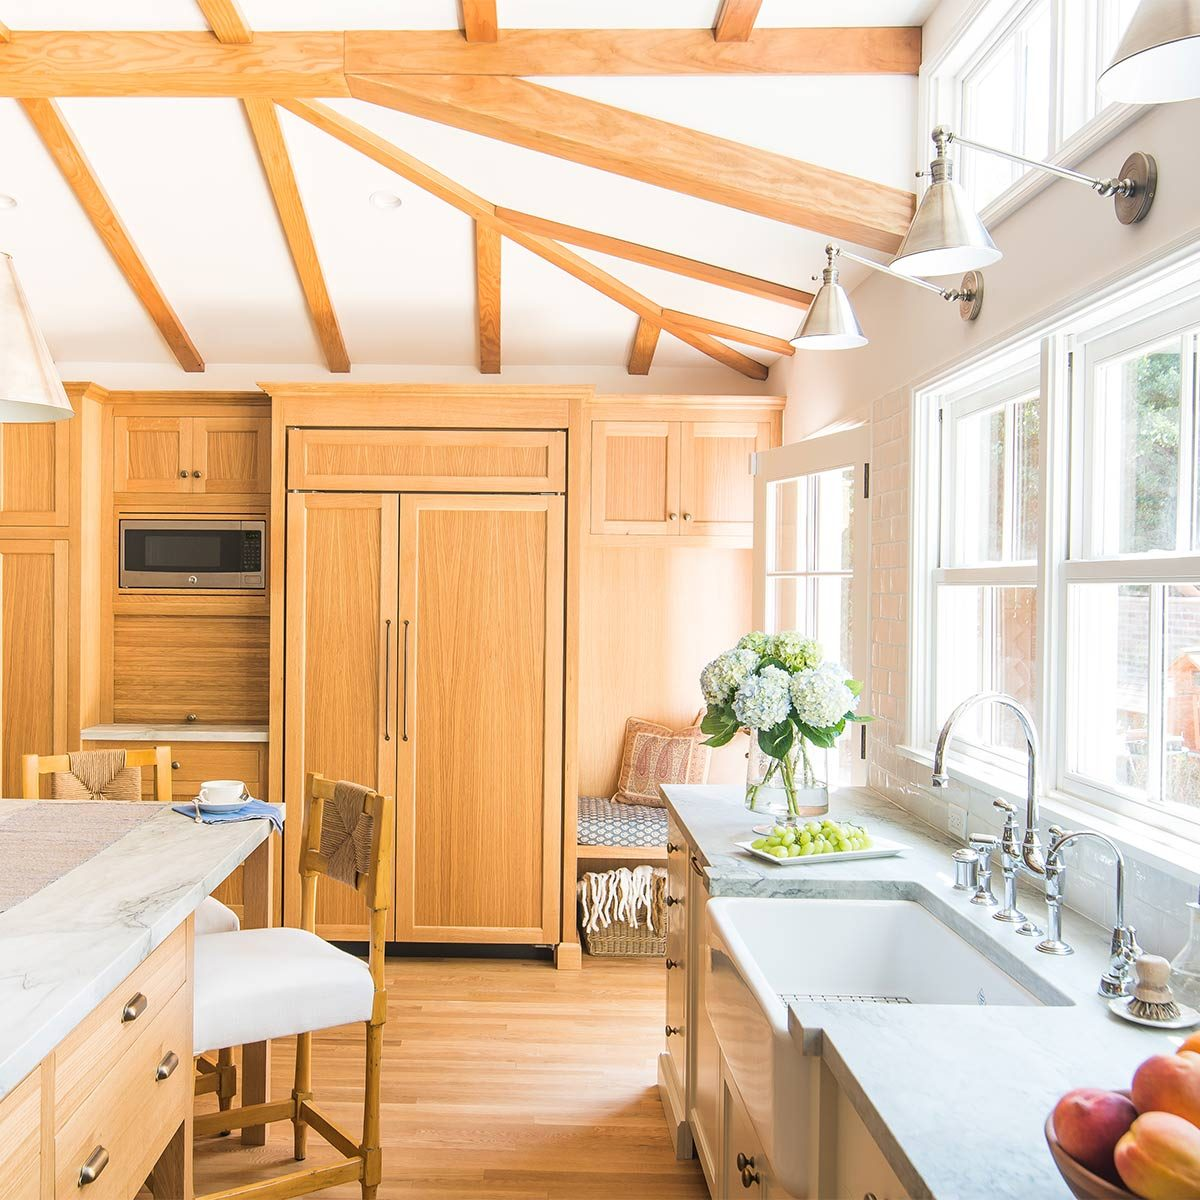 Incredible Kitchen Remodeling Ideas — The Family Handyman on ceiling painting, ceiling drywall, ceiling air conditioning, ceiling home,